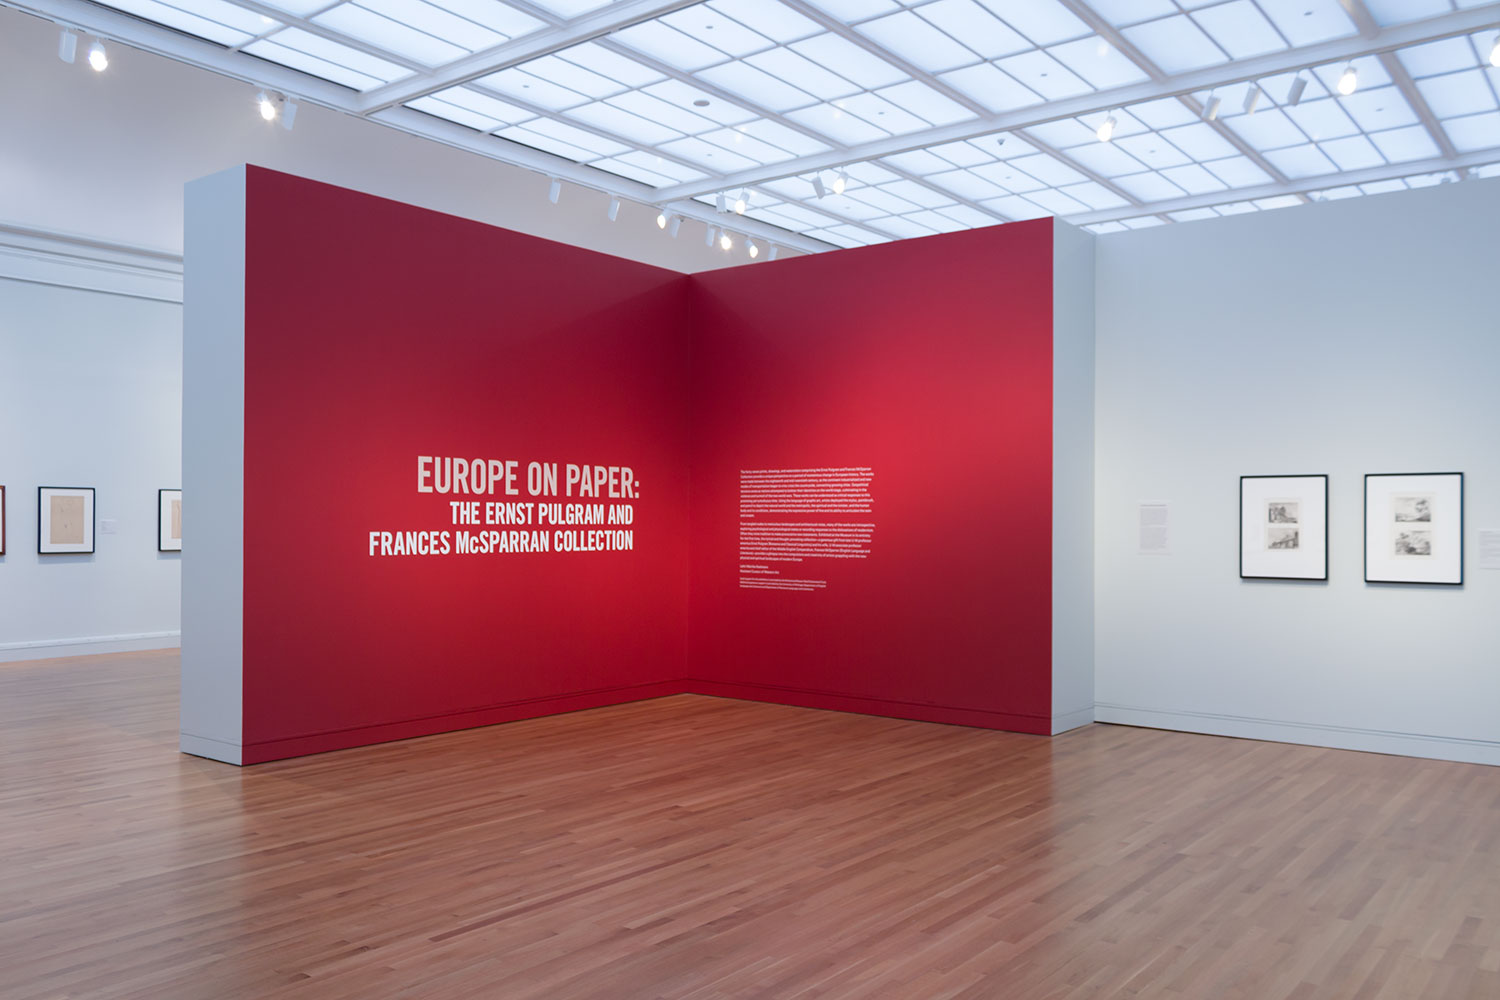 Europe_On_Paper_Intro_Wall.jpg